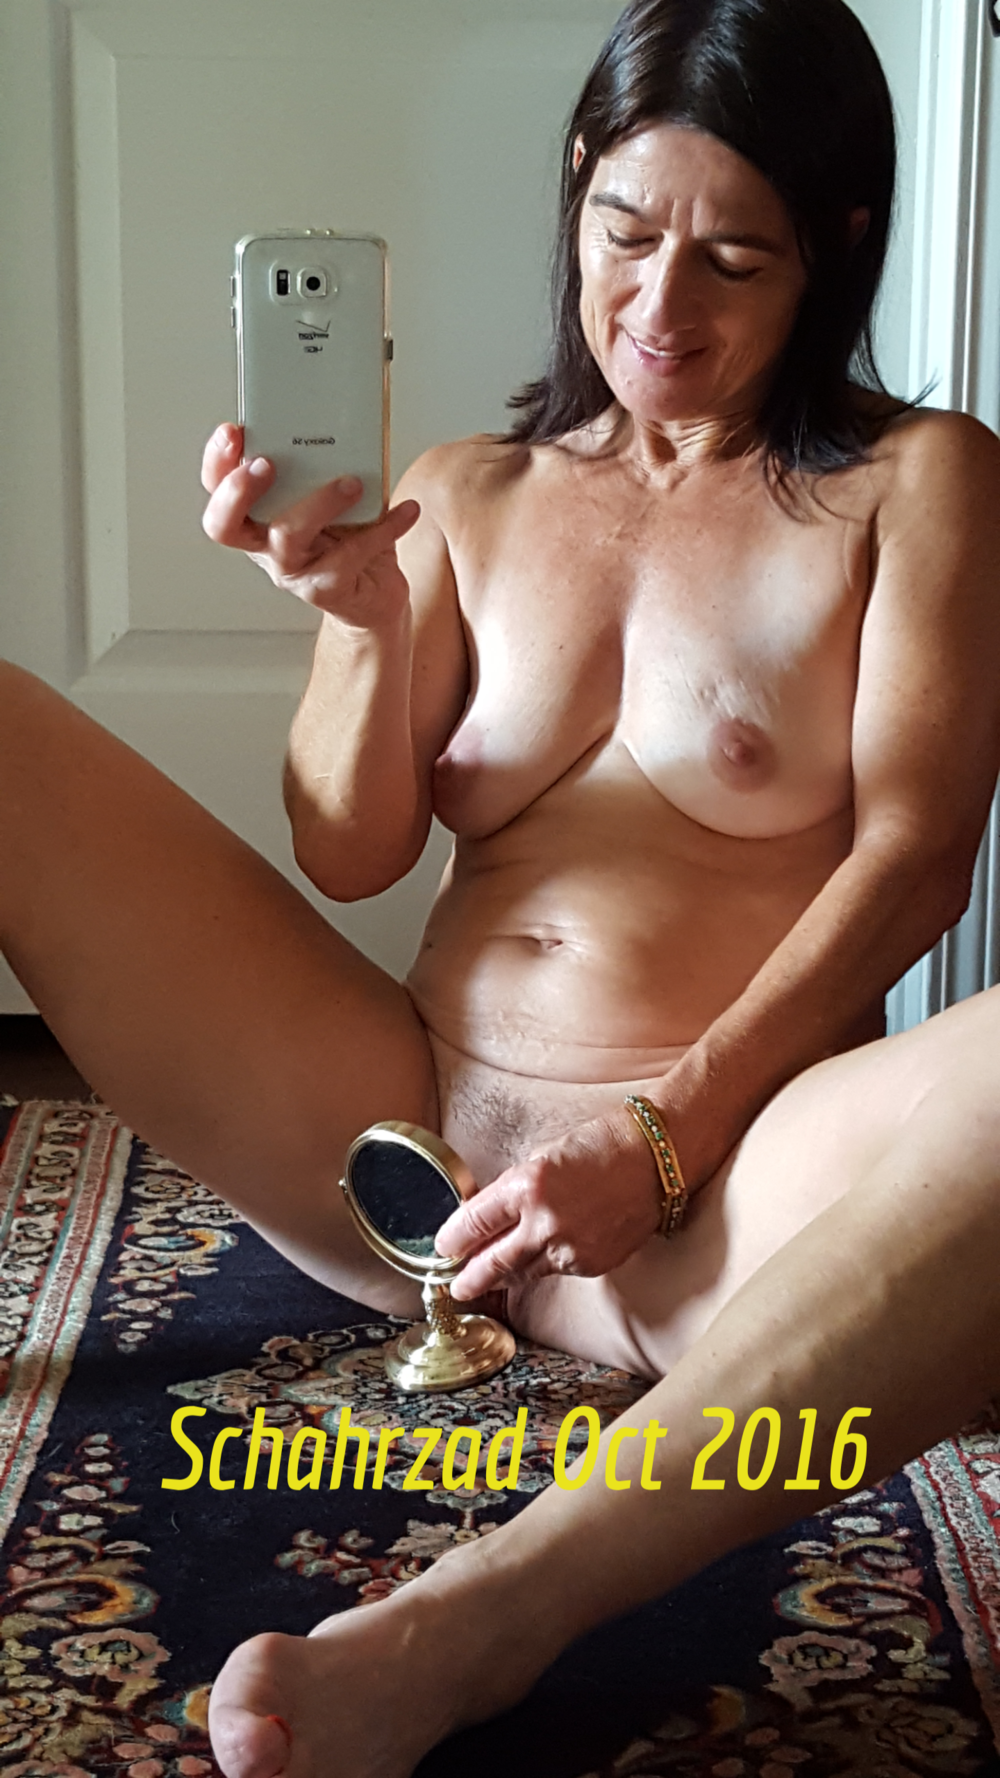 Persian nudes galleries nsfw video